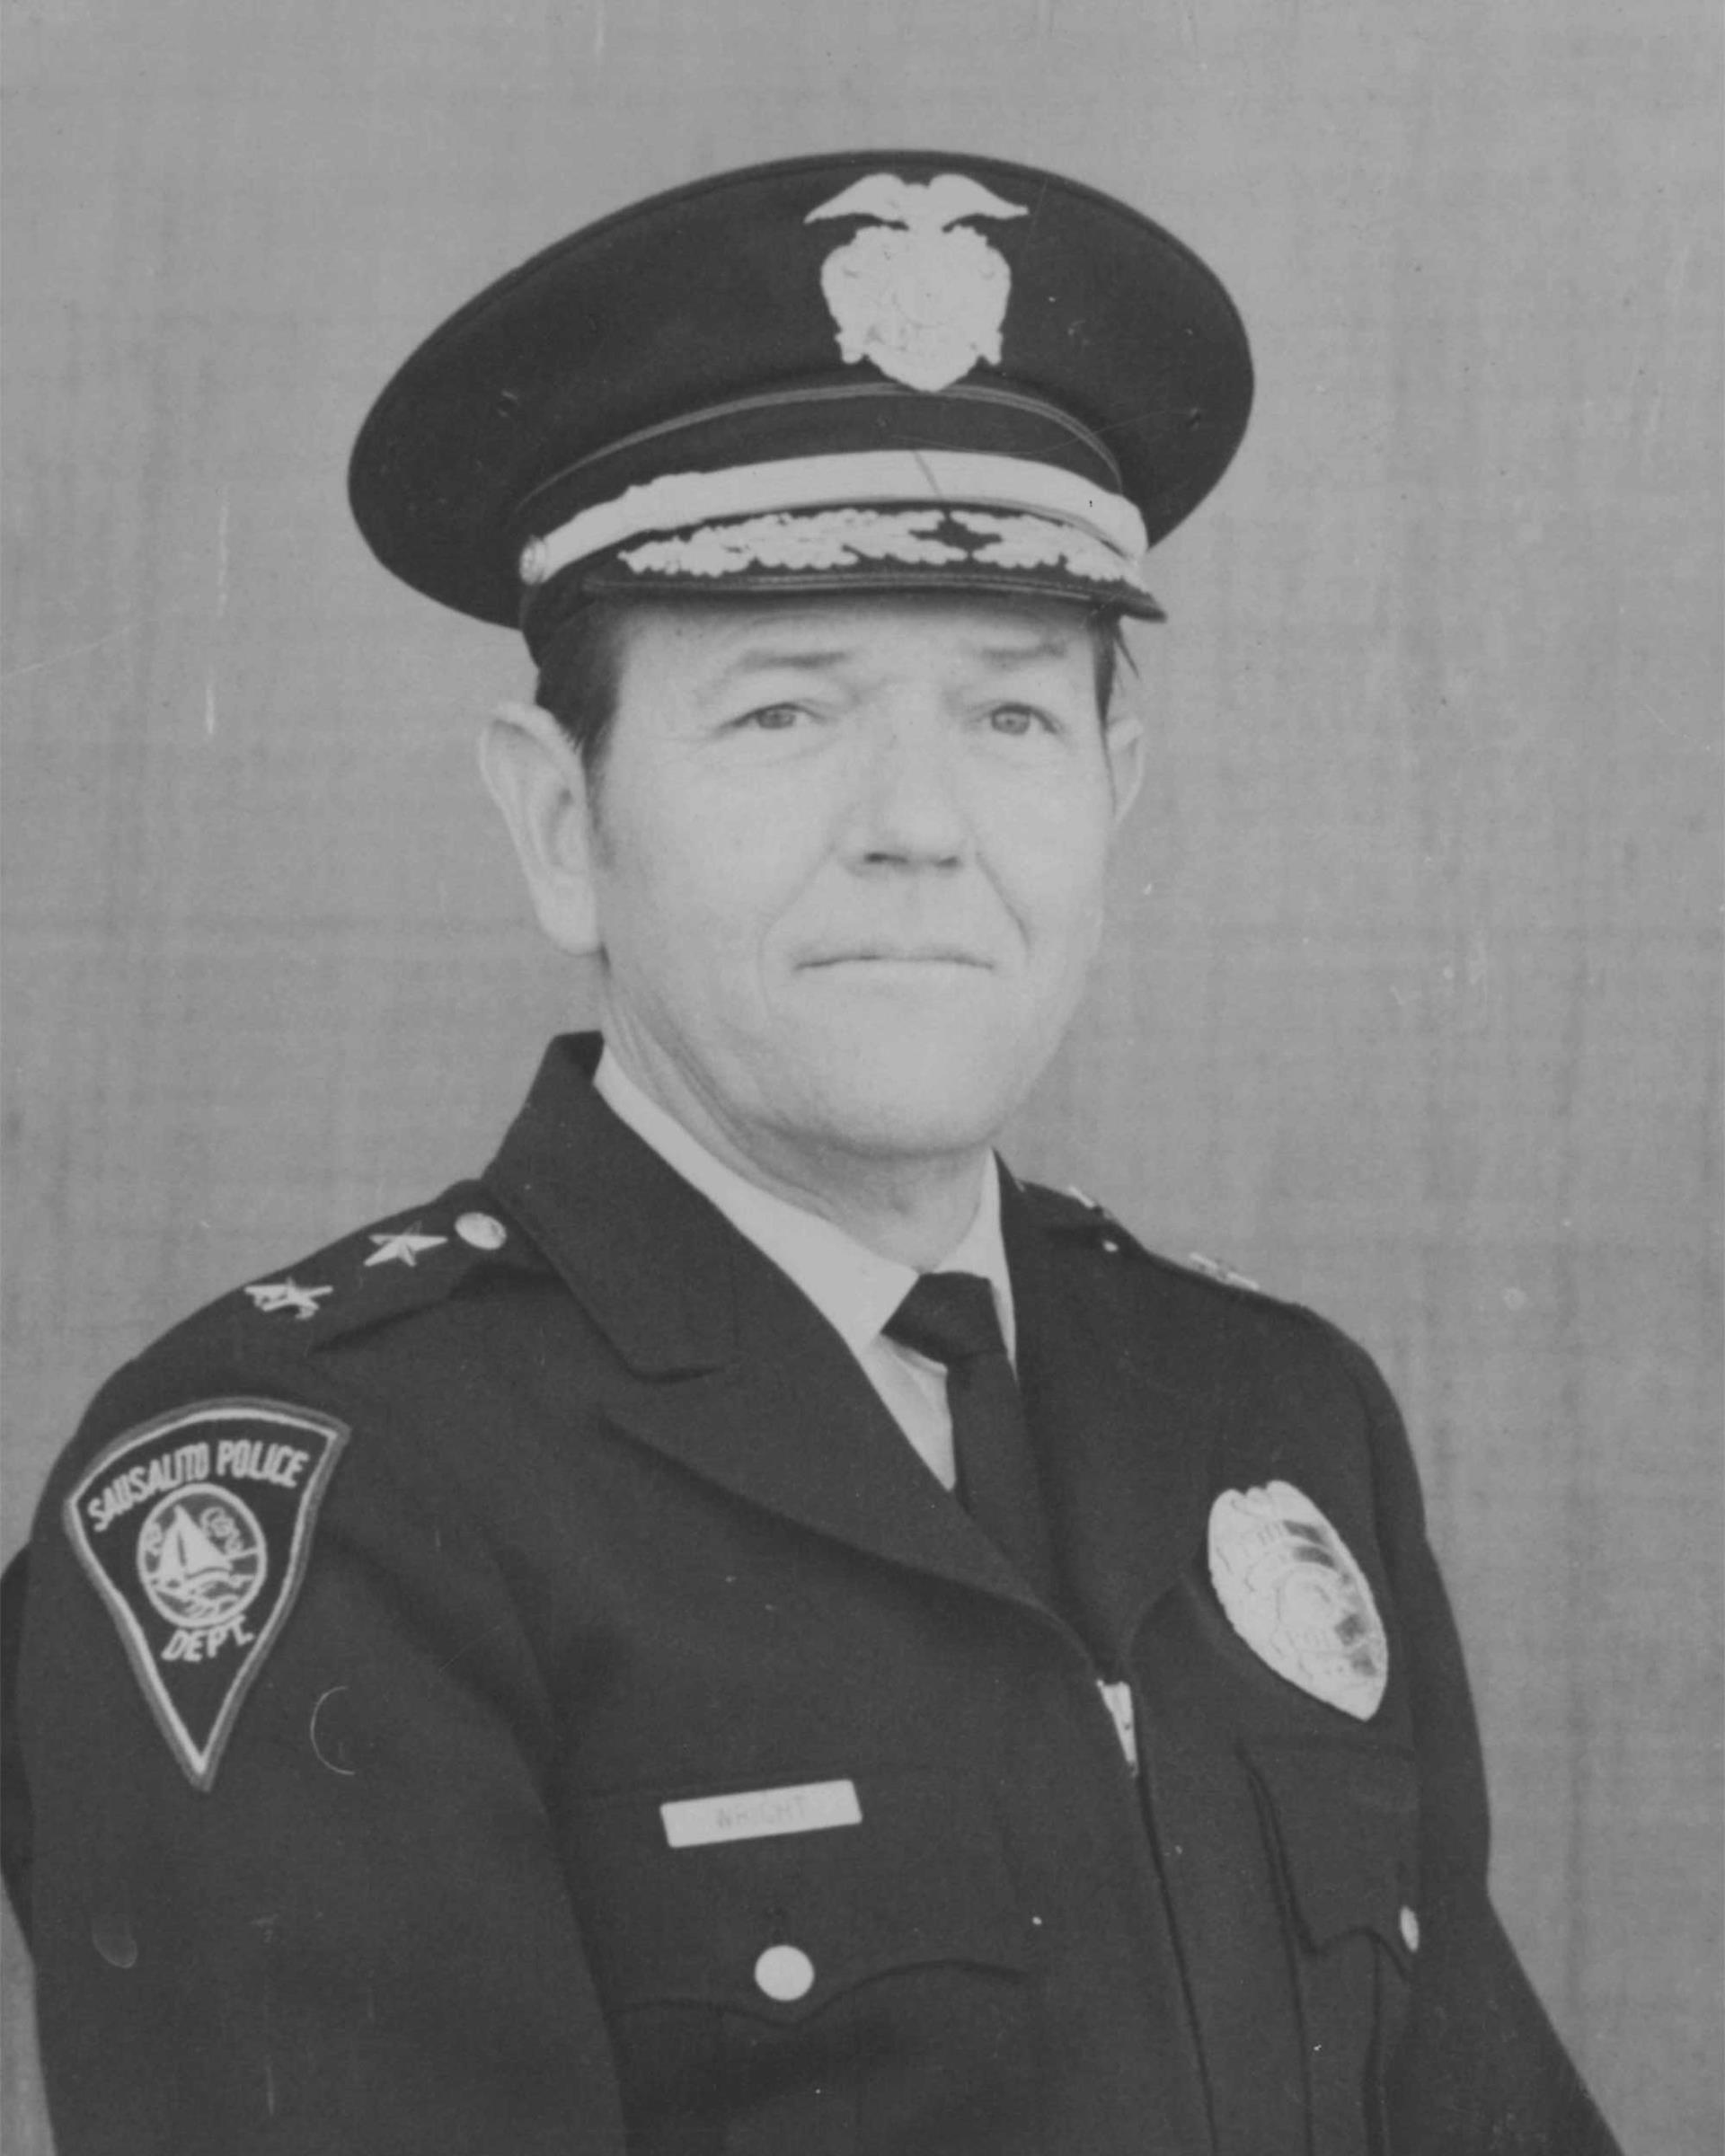 Chief James D. Wright (1969-1981)